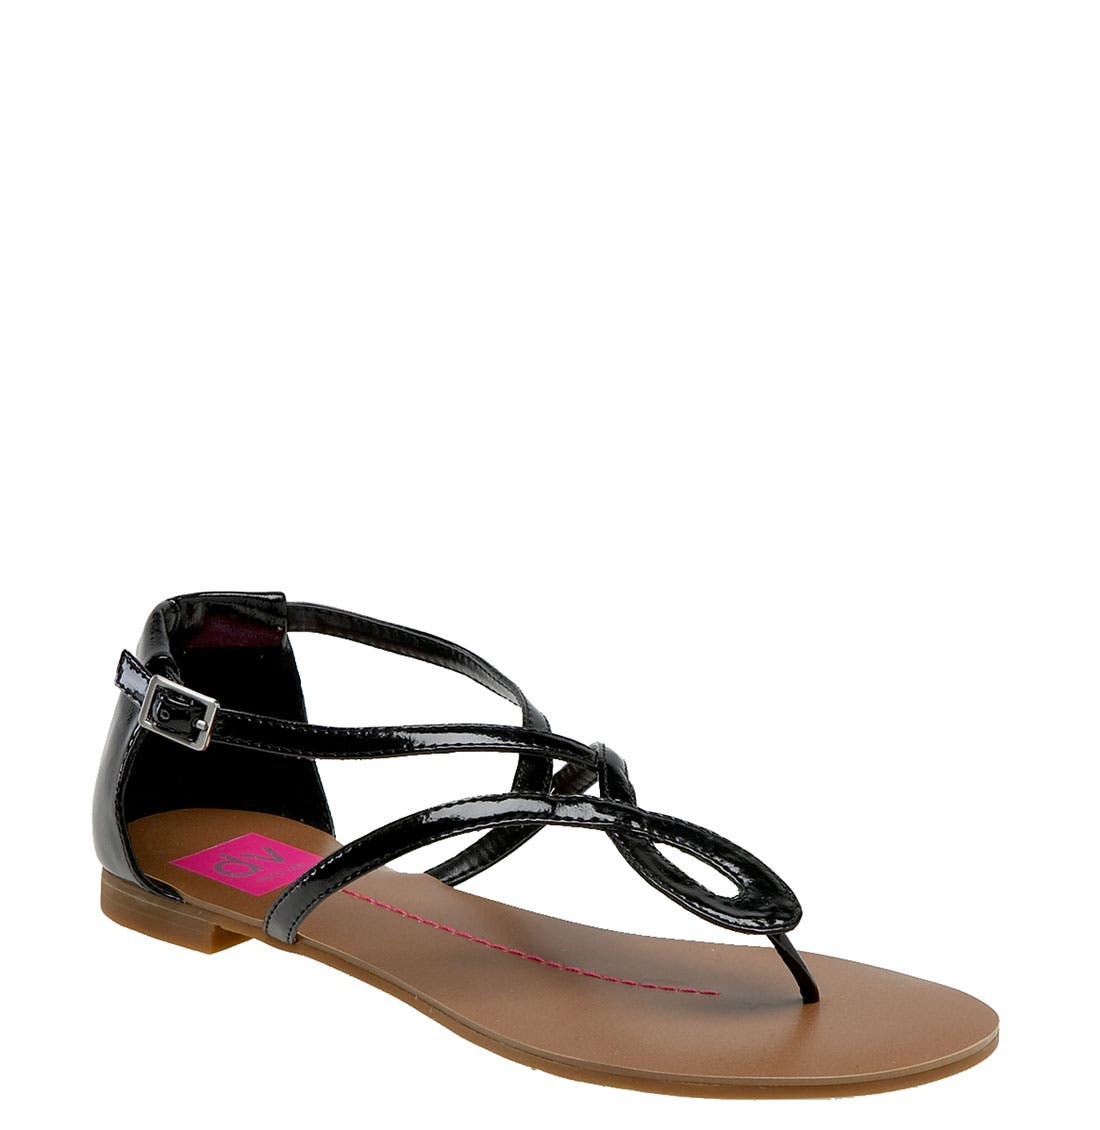 Alternate Image 1 Selected - DV by Dolce Vita 'Ontario' Sandal